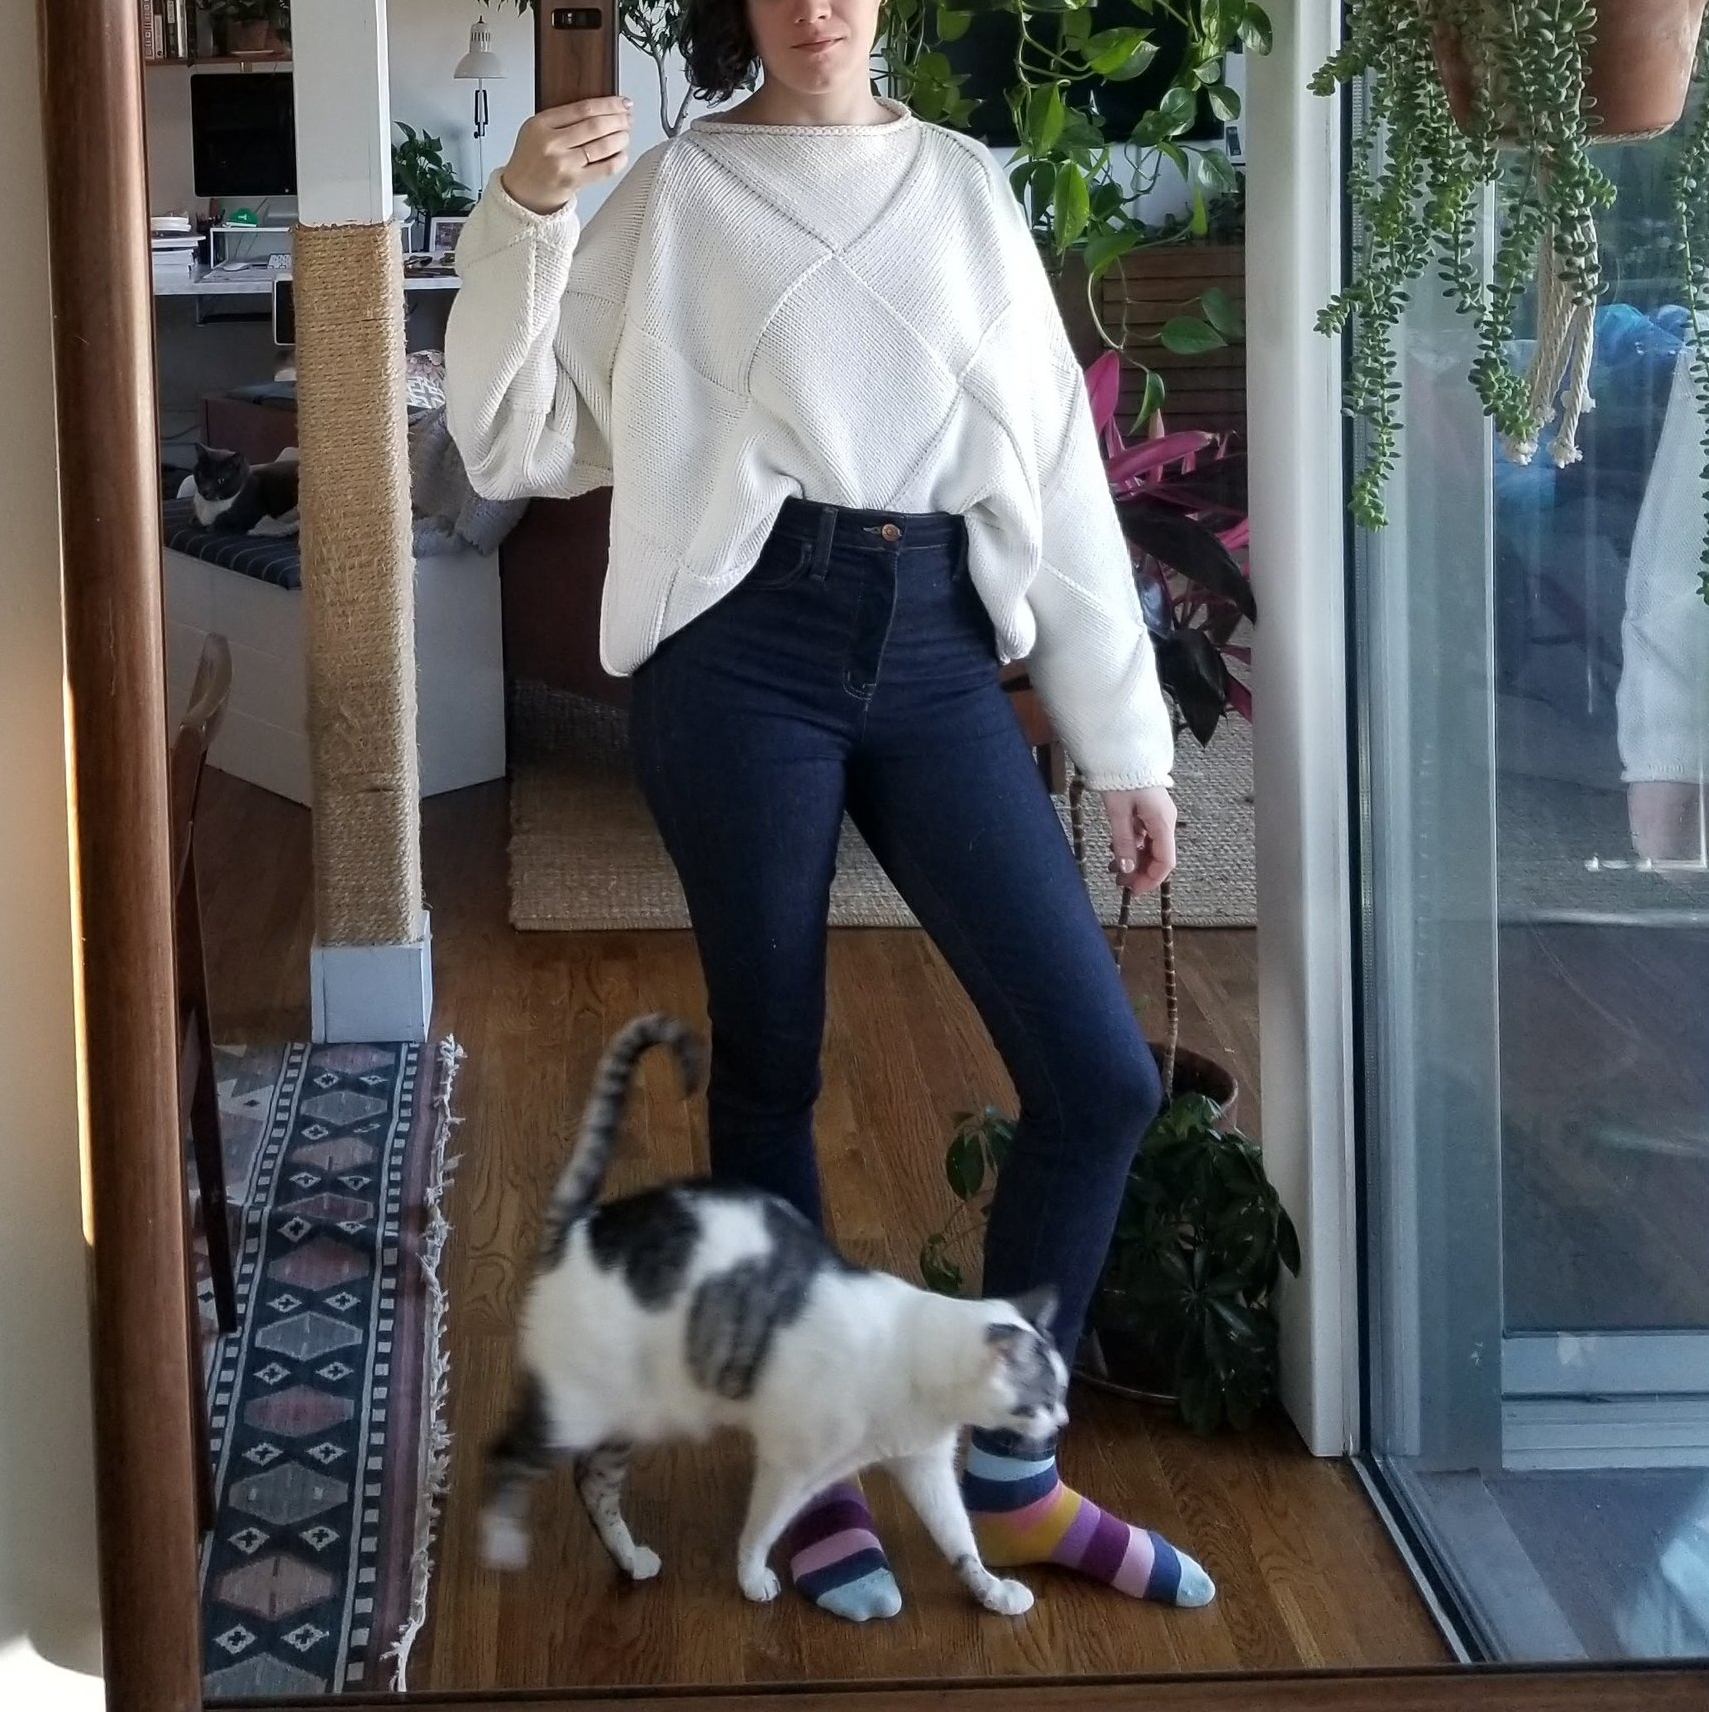 Thursday  - April 5, 2018Work from home day! Is the chunky sweater front tuck too much? Might be a bit much. But I'm still loving this Lauren Manoogian sweater. It's a cotton/wool blend, which I've never tried before. Generally 100% cotton sweaters feel useless to me — not warm enough to bother wearing a sweater. But this is 80% cotton, 20% wool, and it's honestly the perfect spring weight. It was in the low to mid 60s, and I wore it without a jacket going outside to meet contractors and felt plenty warm but not overly warm. We keep the thermostat around 66 or 68 in the winter, so it's also nice for indoors. I had a tank top underneath.